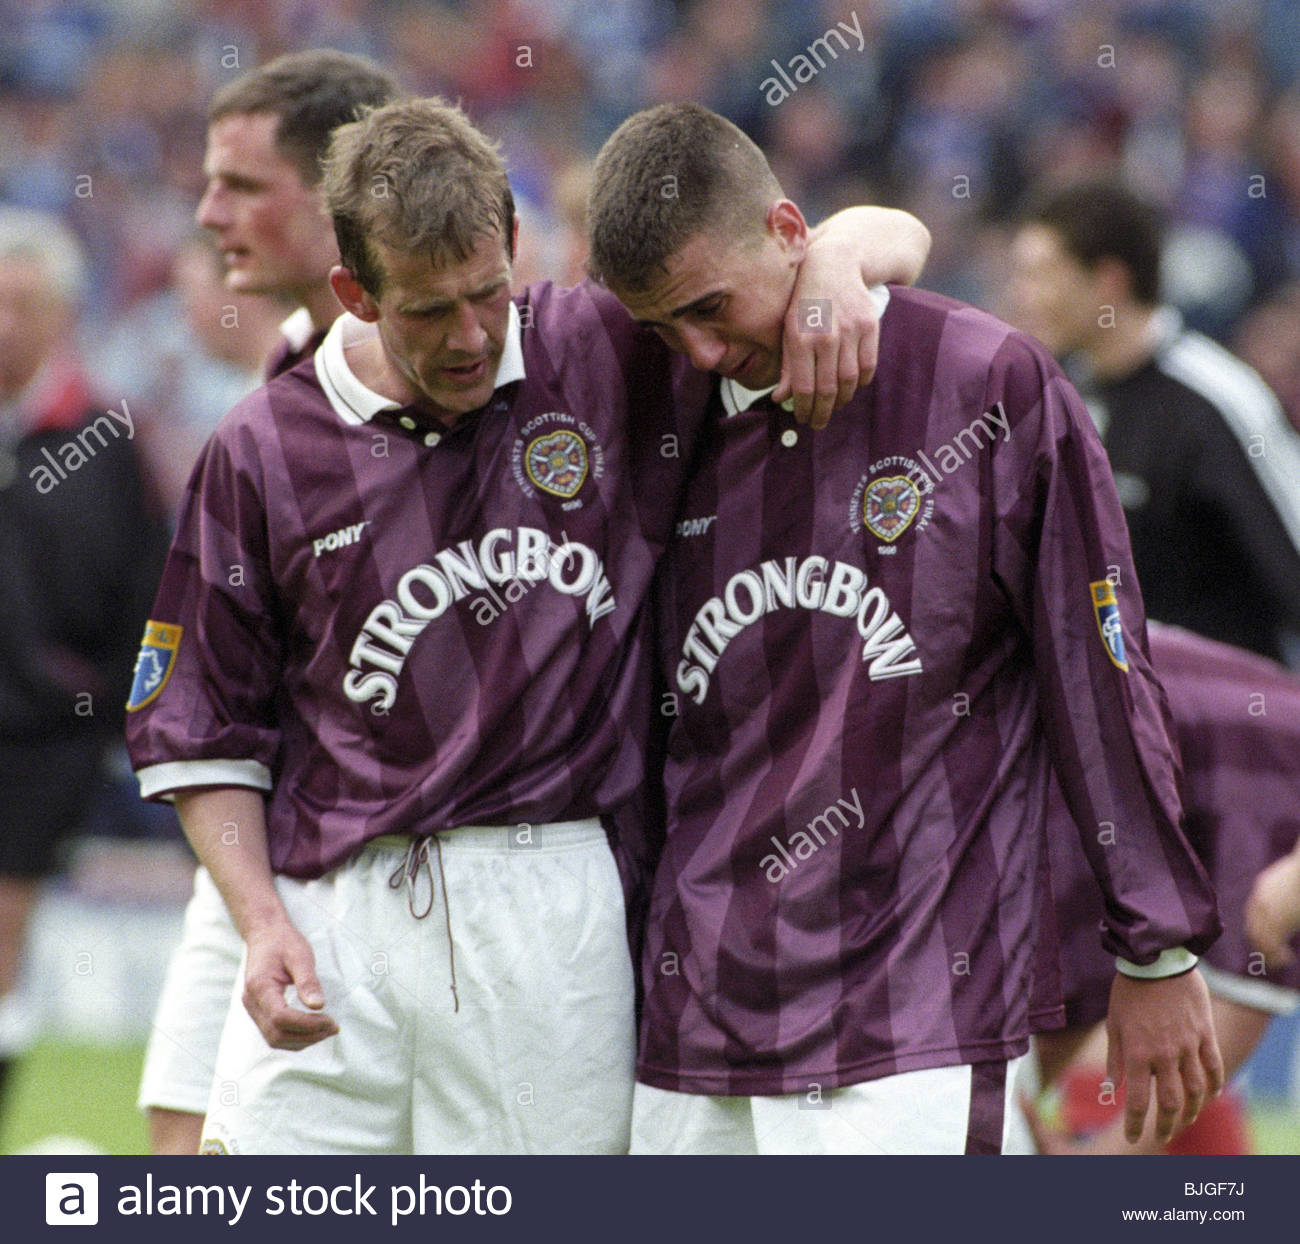 18/05/96 TENNENT'S SCOTTISH CUP FINAL RANGERS V HEARTS (5-1) HAMPDEN - GLASGOW A tearful Paul Ritchie (right) - Stock Image